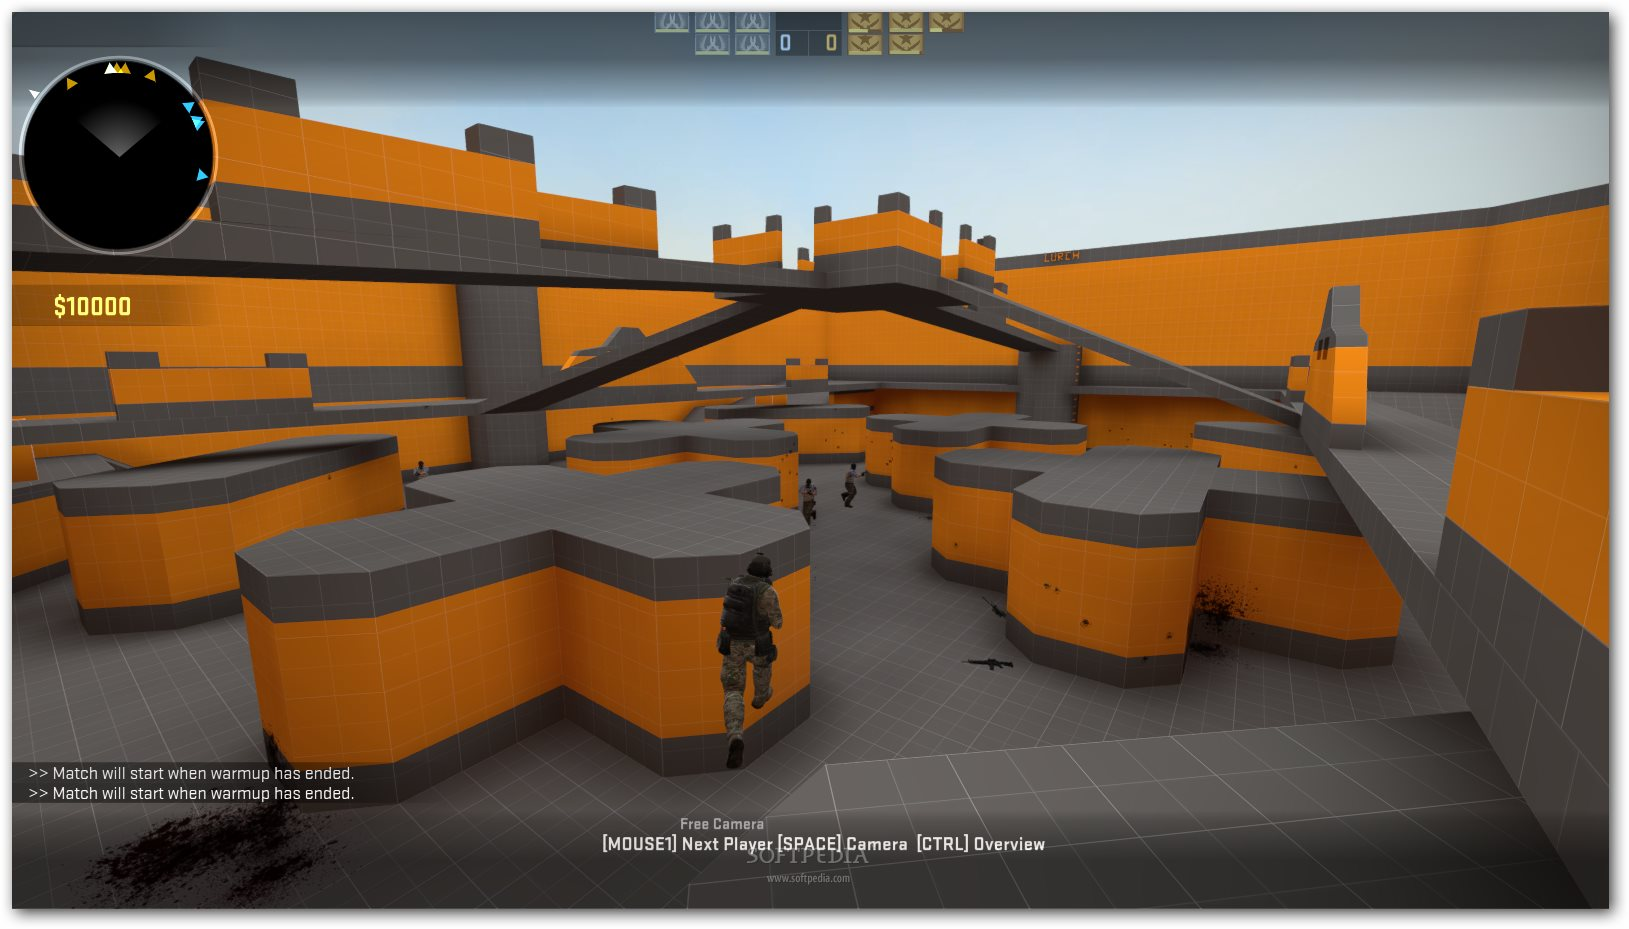 Counter-Strike: Global Offensive Map - happy_frags screenshot 3